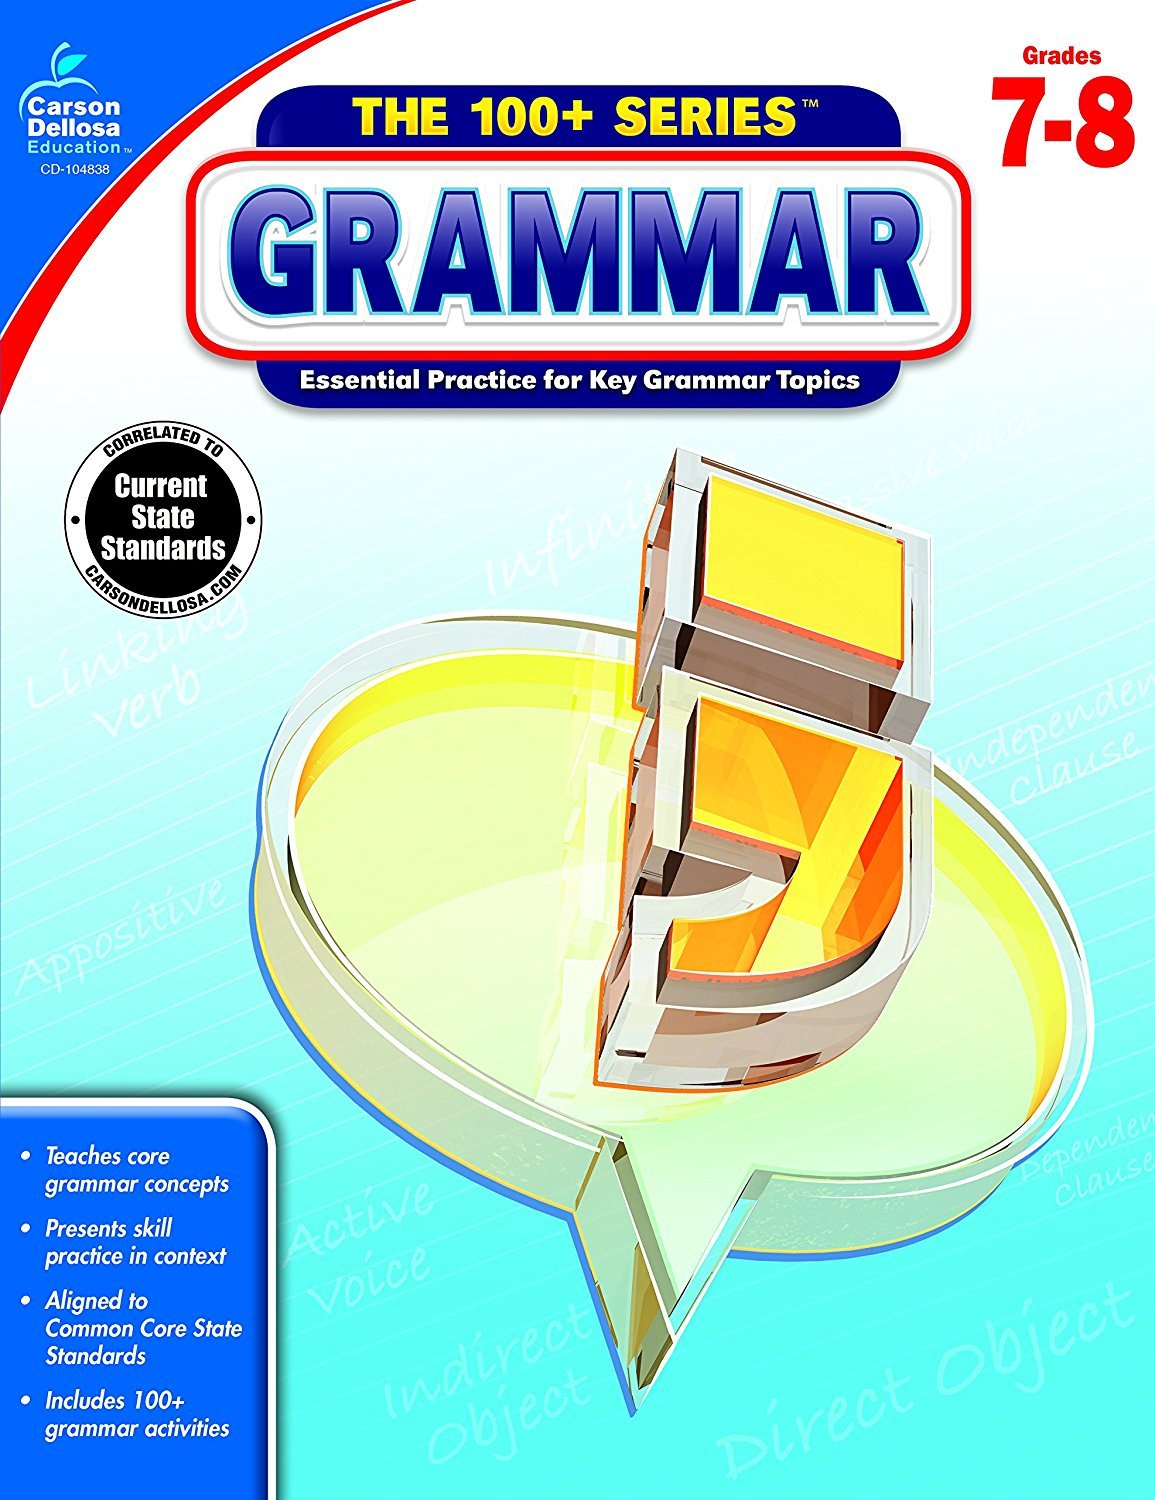 CD 104838 THE 100+ SERIES GRAMMAR G7-8